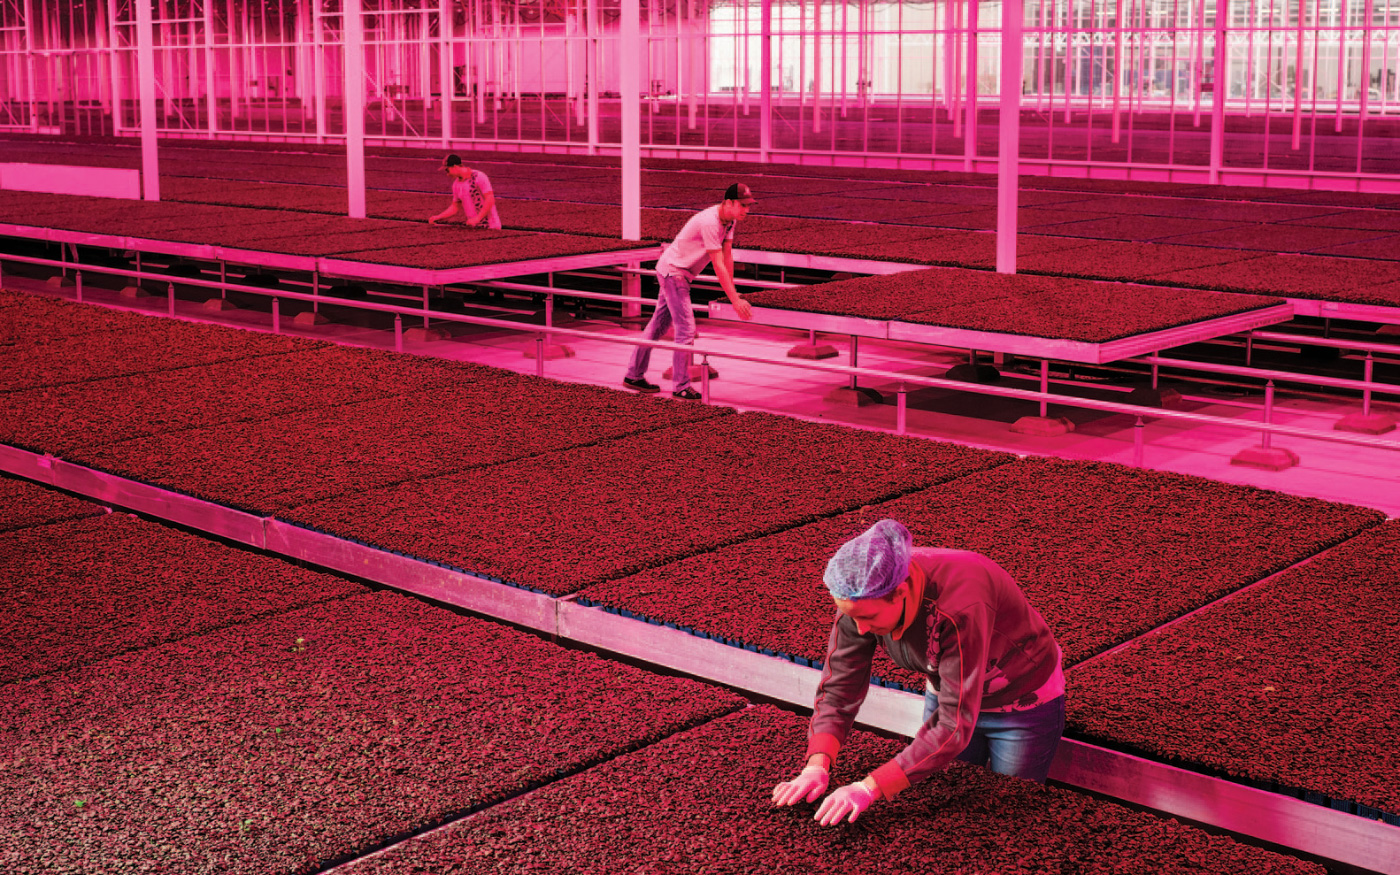 People working with soil in large greenhouse with pink lighting